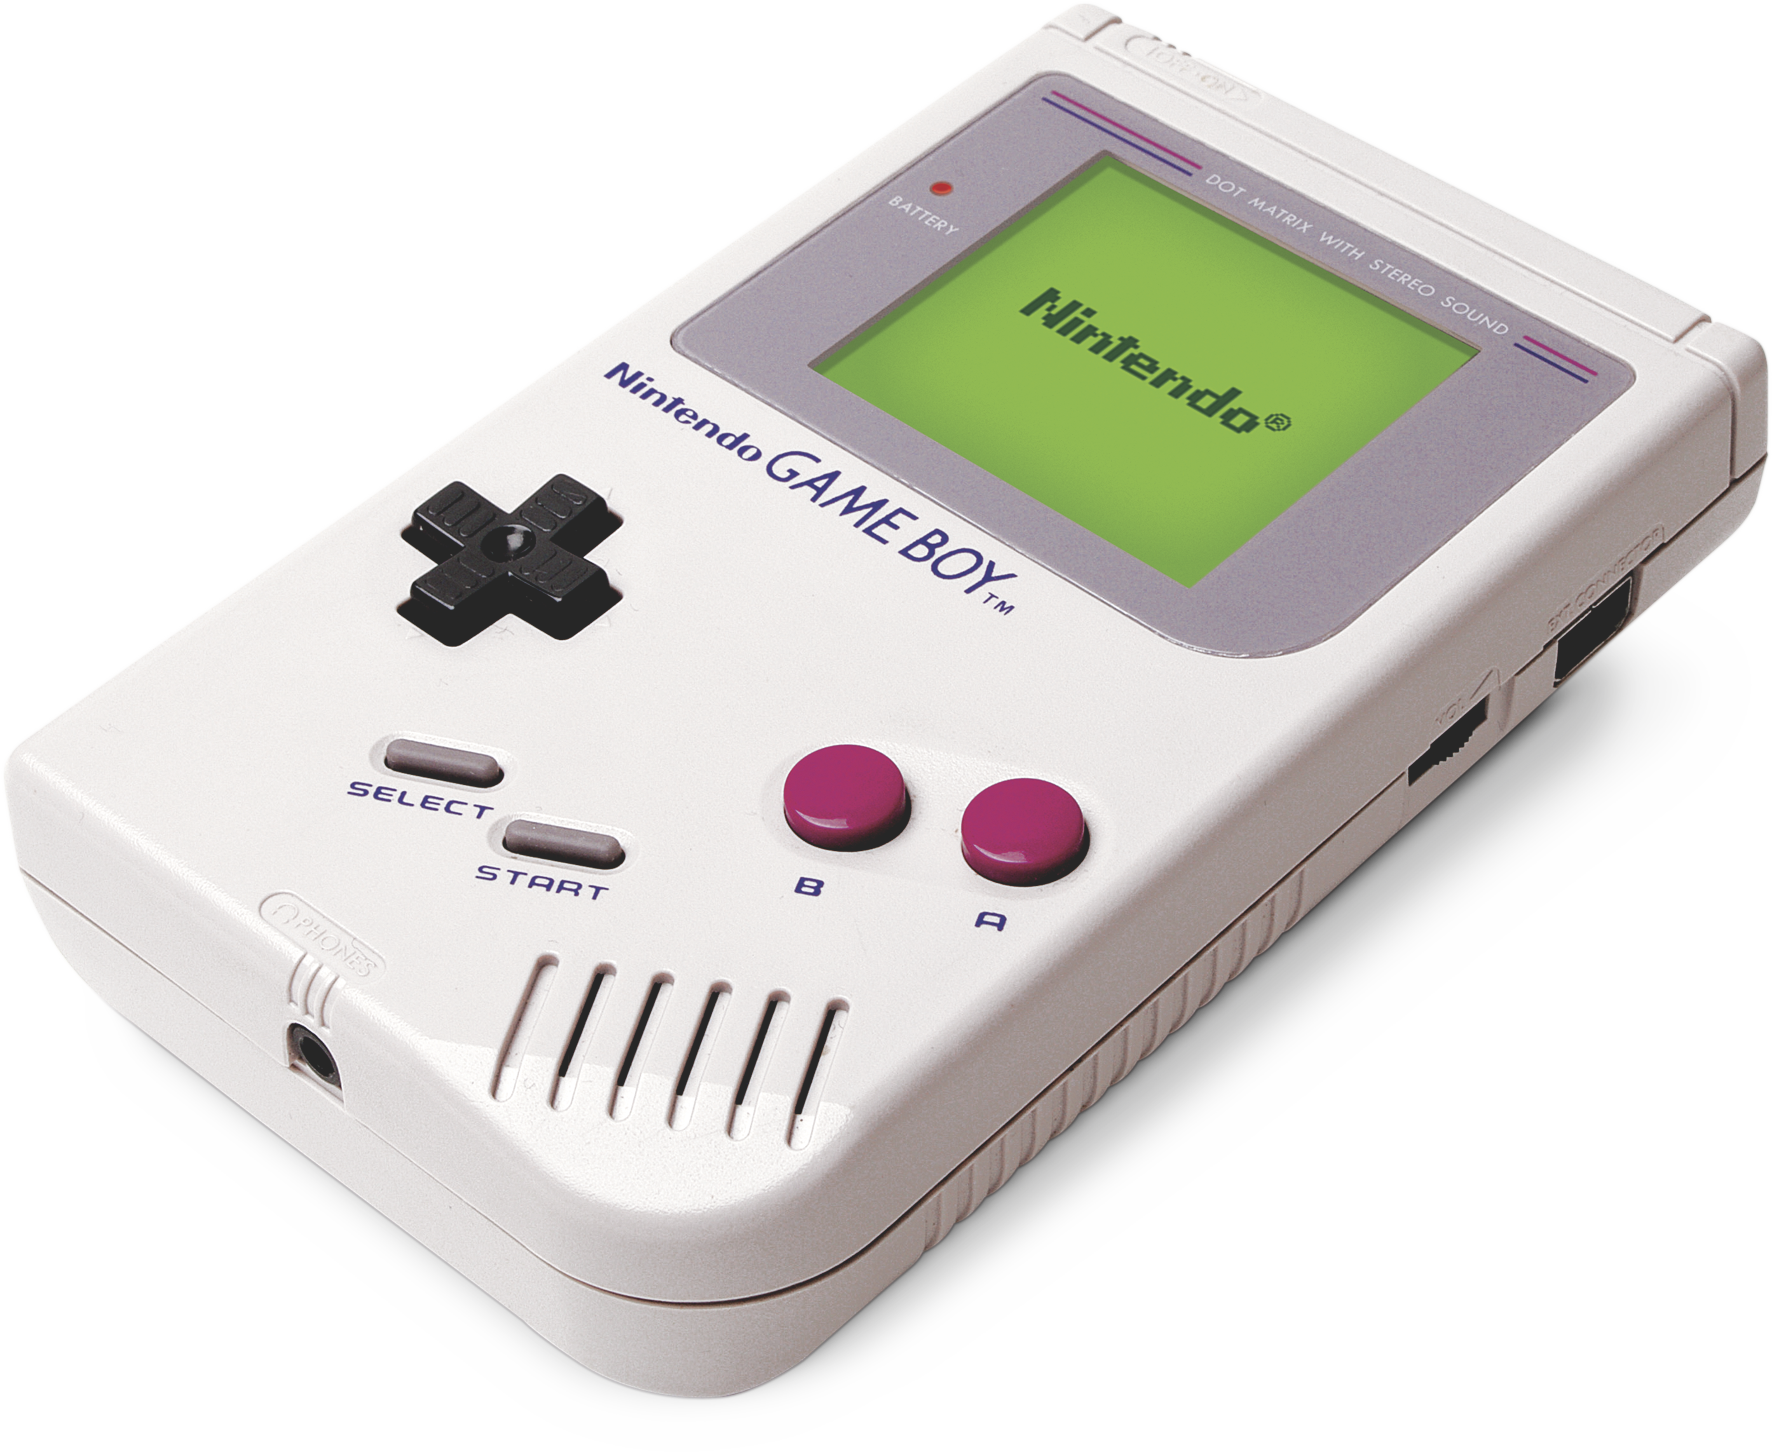 Nintendo gameboy png. Game boy images launchbox